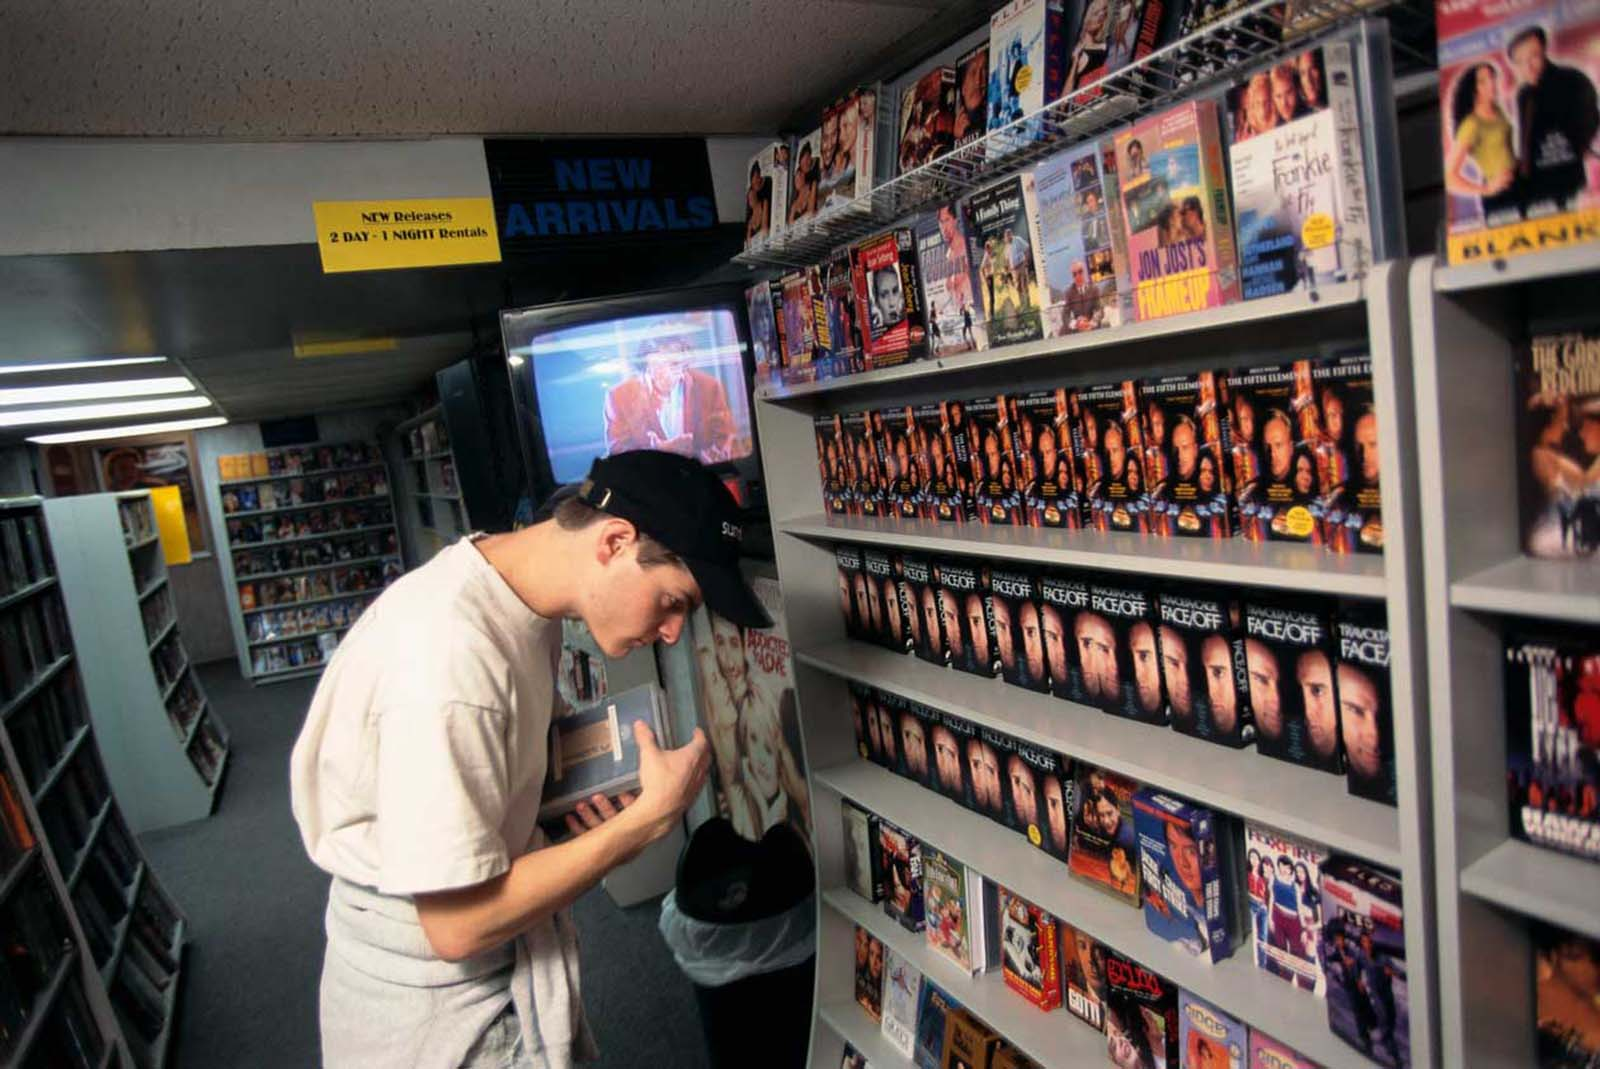 A young man looks at rental movies in Channel Video, a video store in Manhattan, New York. 1997.